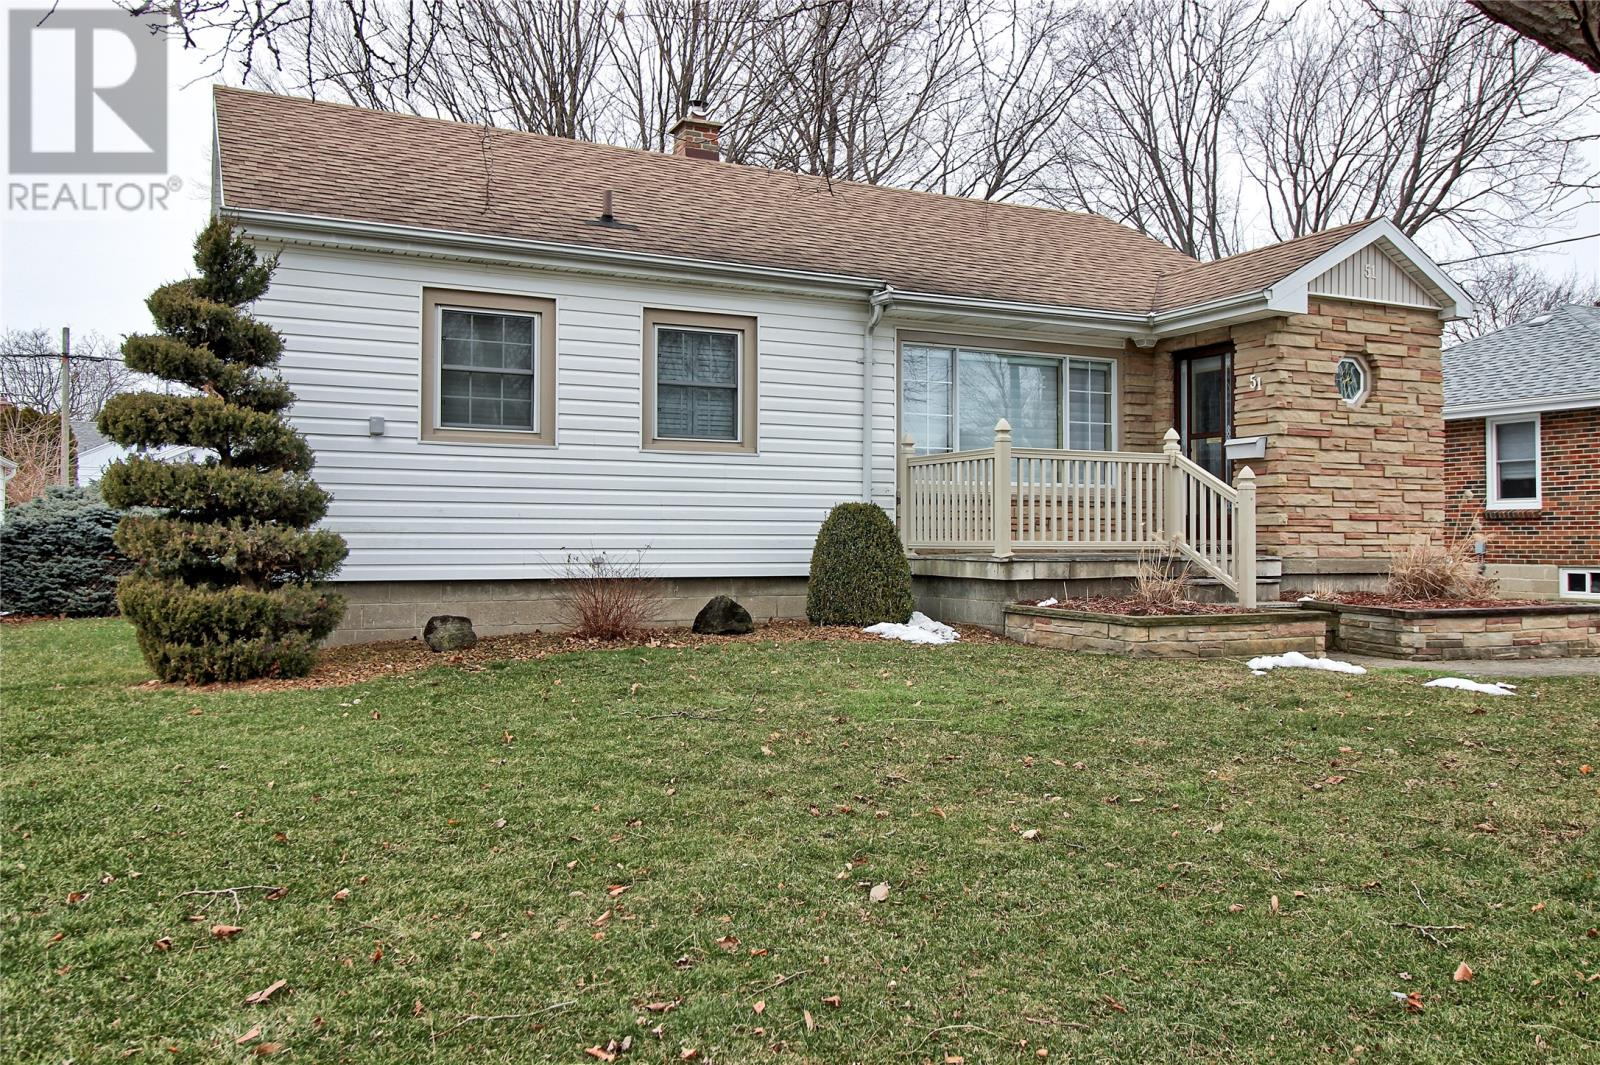 Removed: 51 Mcgeorge Avenue, Chatham, ON - Removed on 2020-02-28 19:42:17